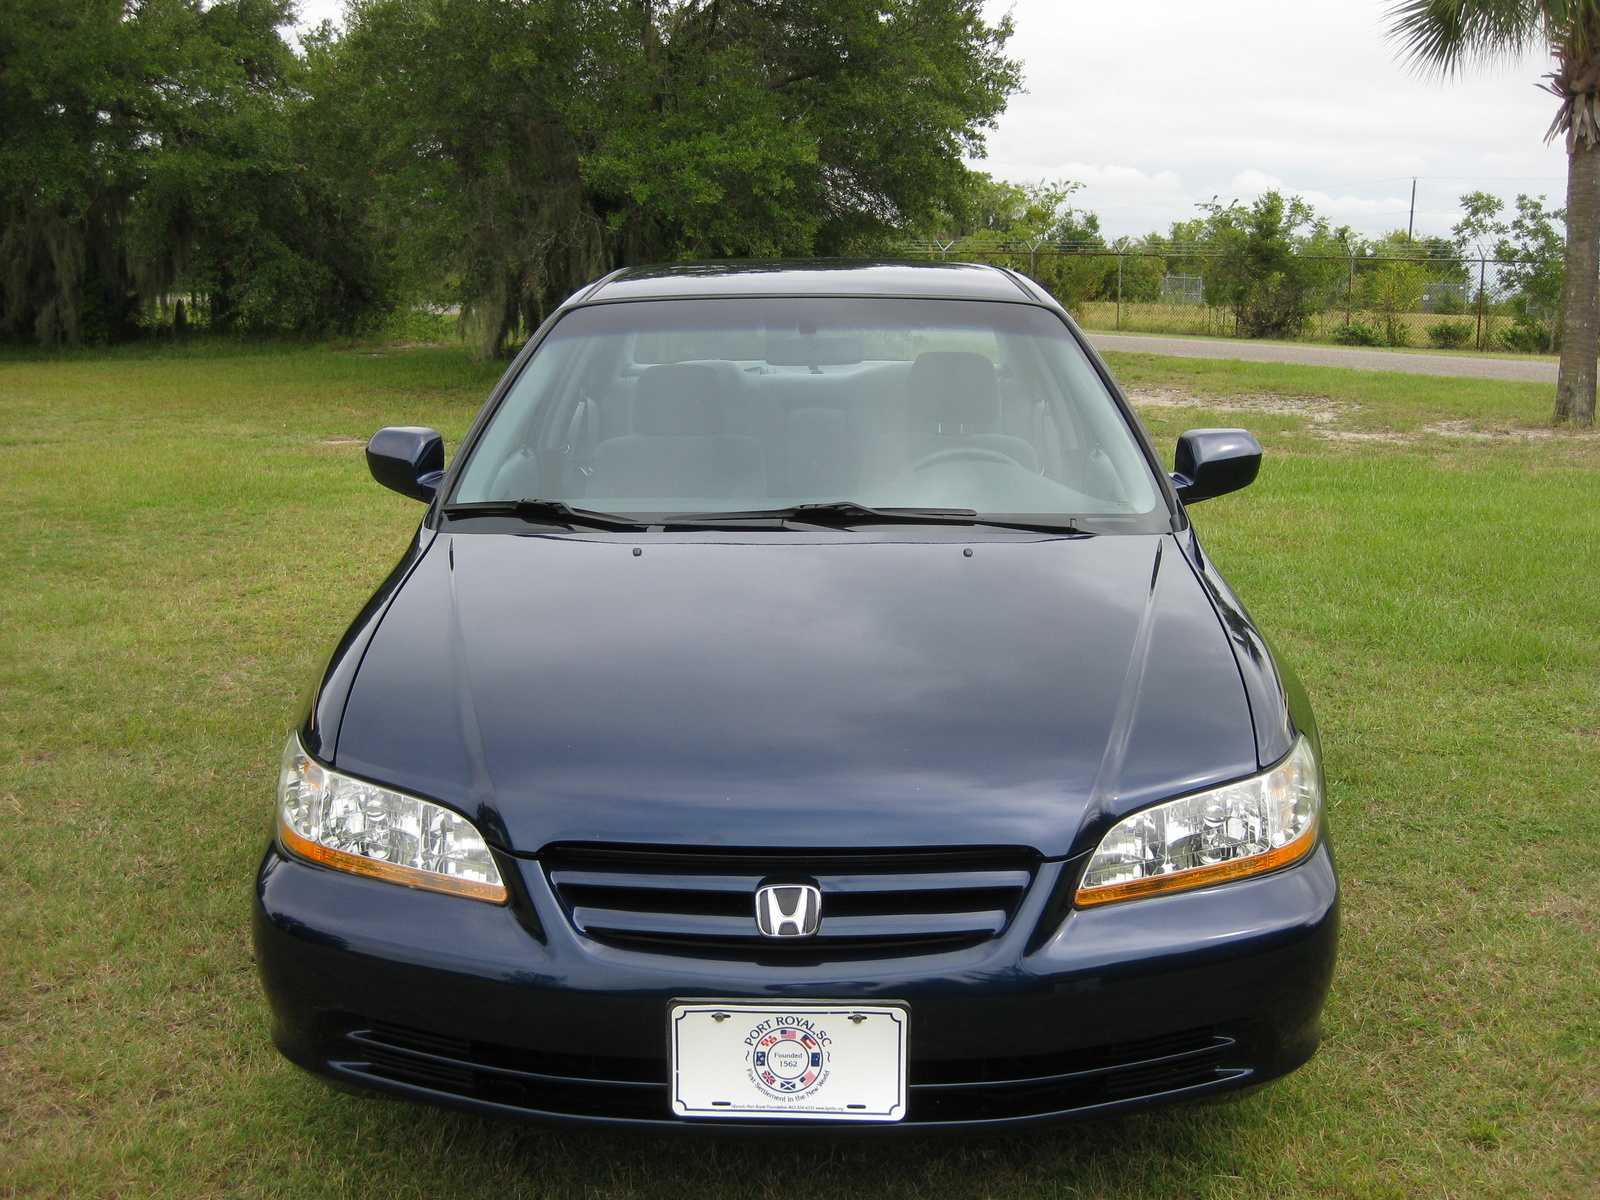 2002 Honda Accord Lx V6 Related Infomation Specifications